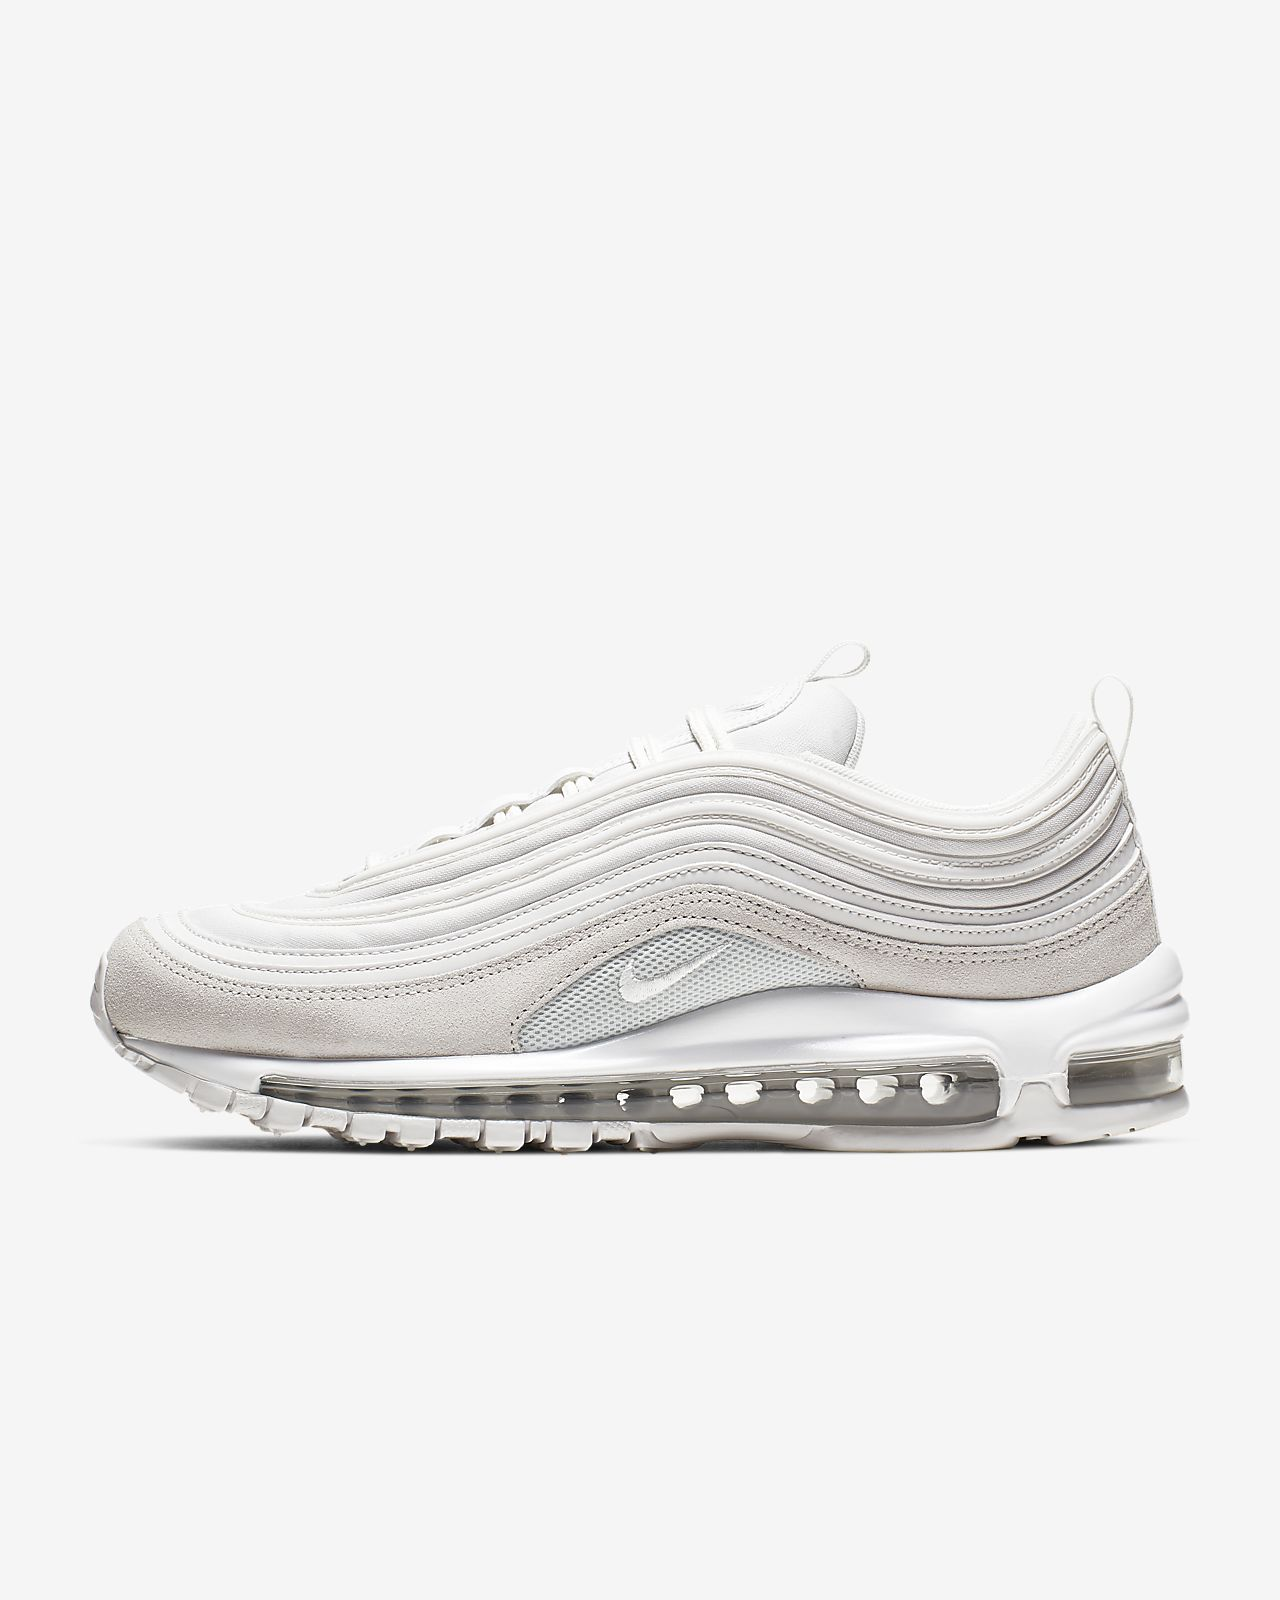 promo code 3f197 e96fb ... Nike Air Max 97 Premium Women s Shoe